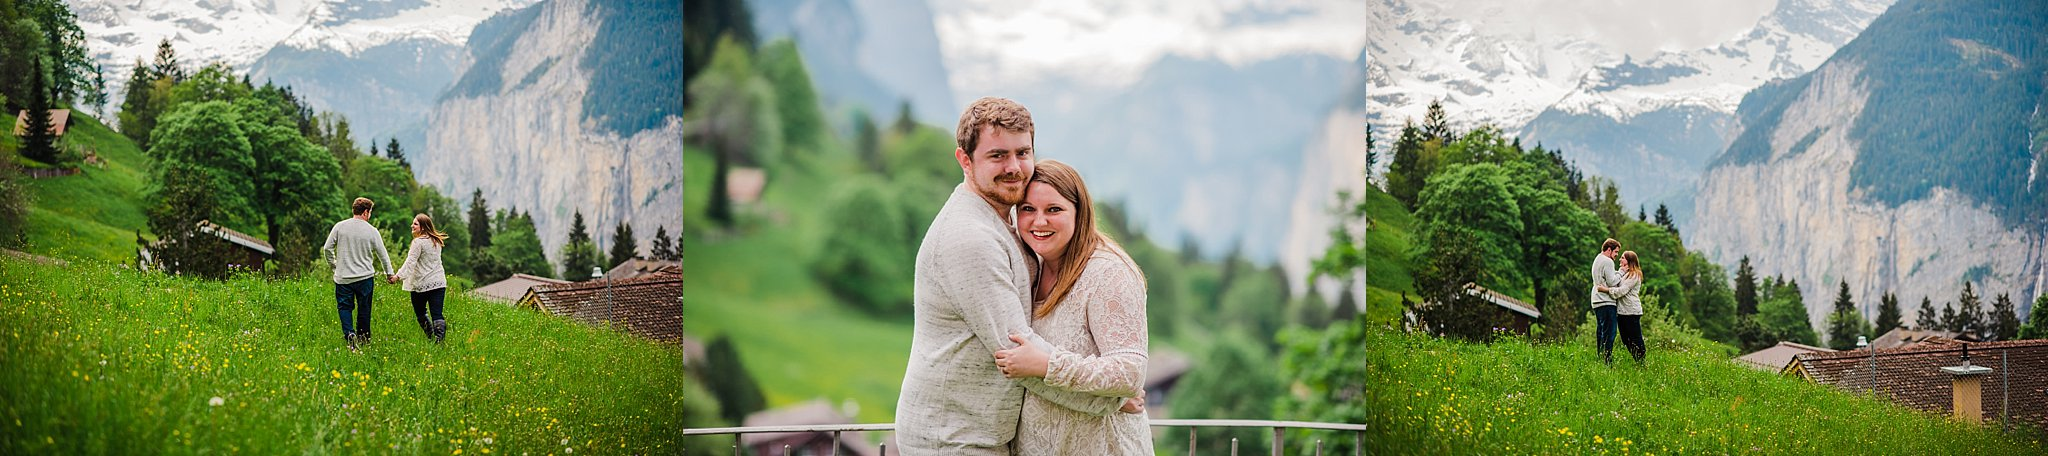 Lauterbrunnen,Murren,Wengen,amanda joy photography,anniversary,bernese oberland,couple in love,destination engagement photo session,engagement photos,europe,european vacation,hilary gardiner photography,interlaken,jungfrau region,mountains,romantic,swiss alps,swiss alps engagement session,swiss chalet,switzerland,